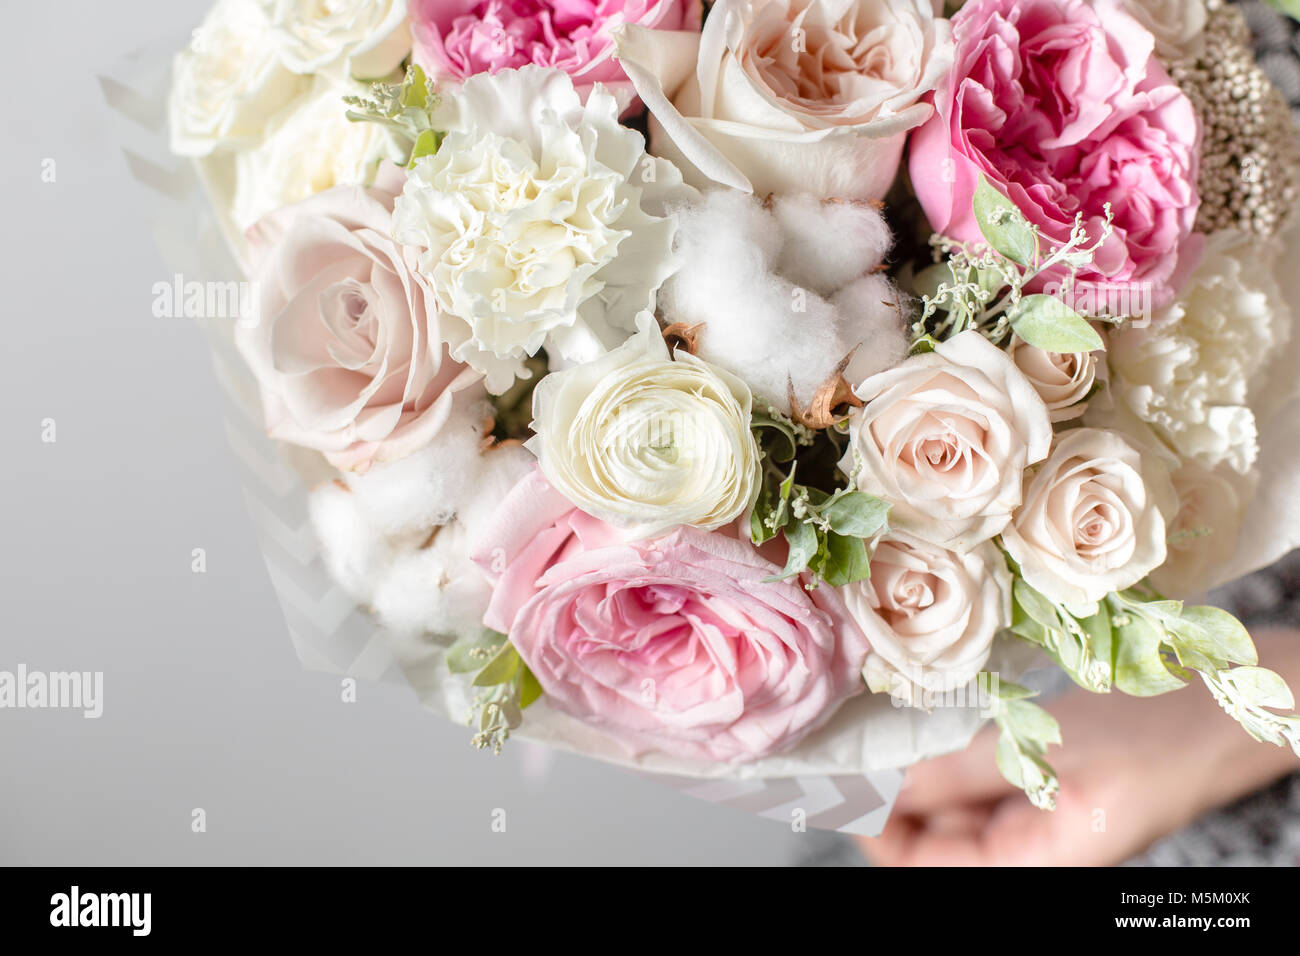 Mix flowers luxury bouquets in the girls hands stock photo mix flowers luxury bouquets in the girls hands izmirmasajfo Choice Image